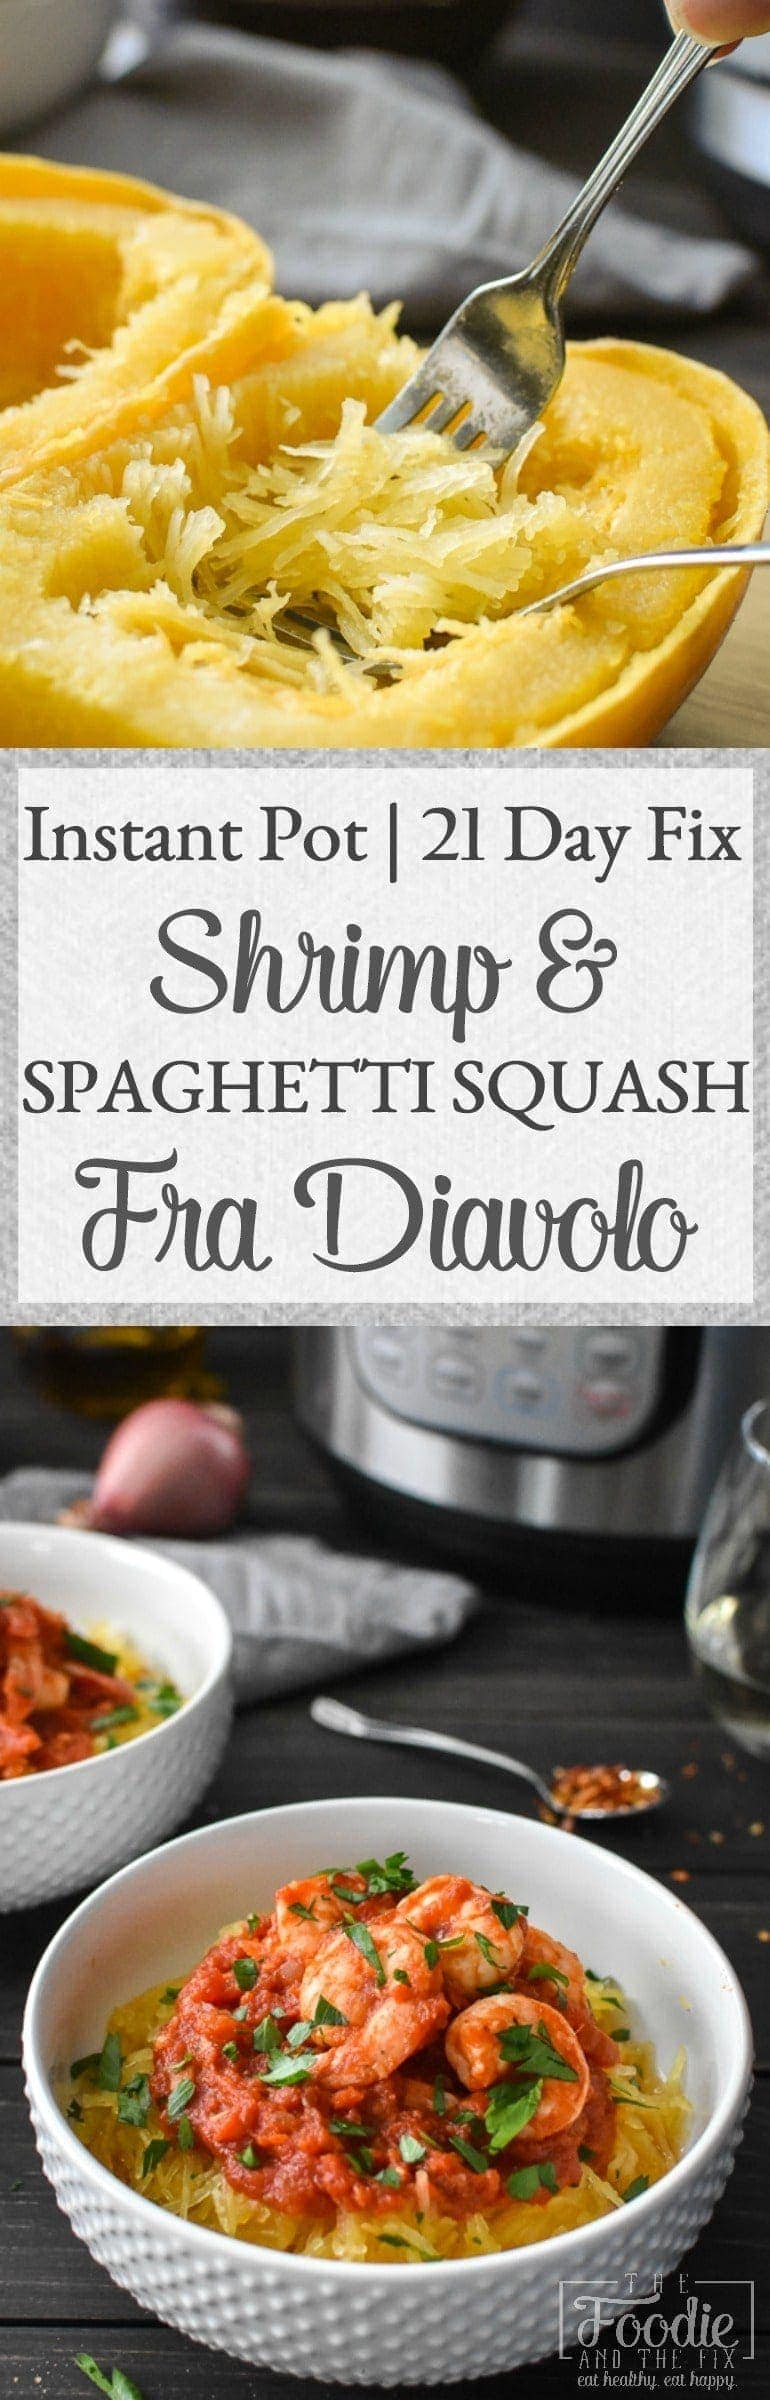 This 21 Day Fix Instant Pot Shrimp and Spaghetti Squash Fra Diavolo is an easy, delicious dinner that's on your table in 30 minutes! Gluten Free | Dairy Free